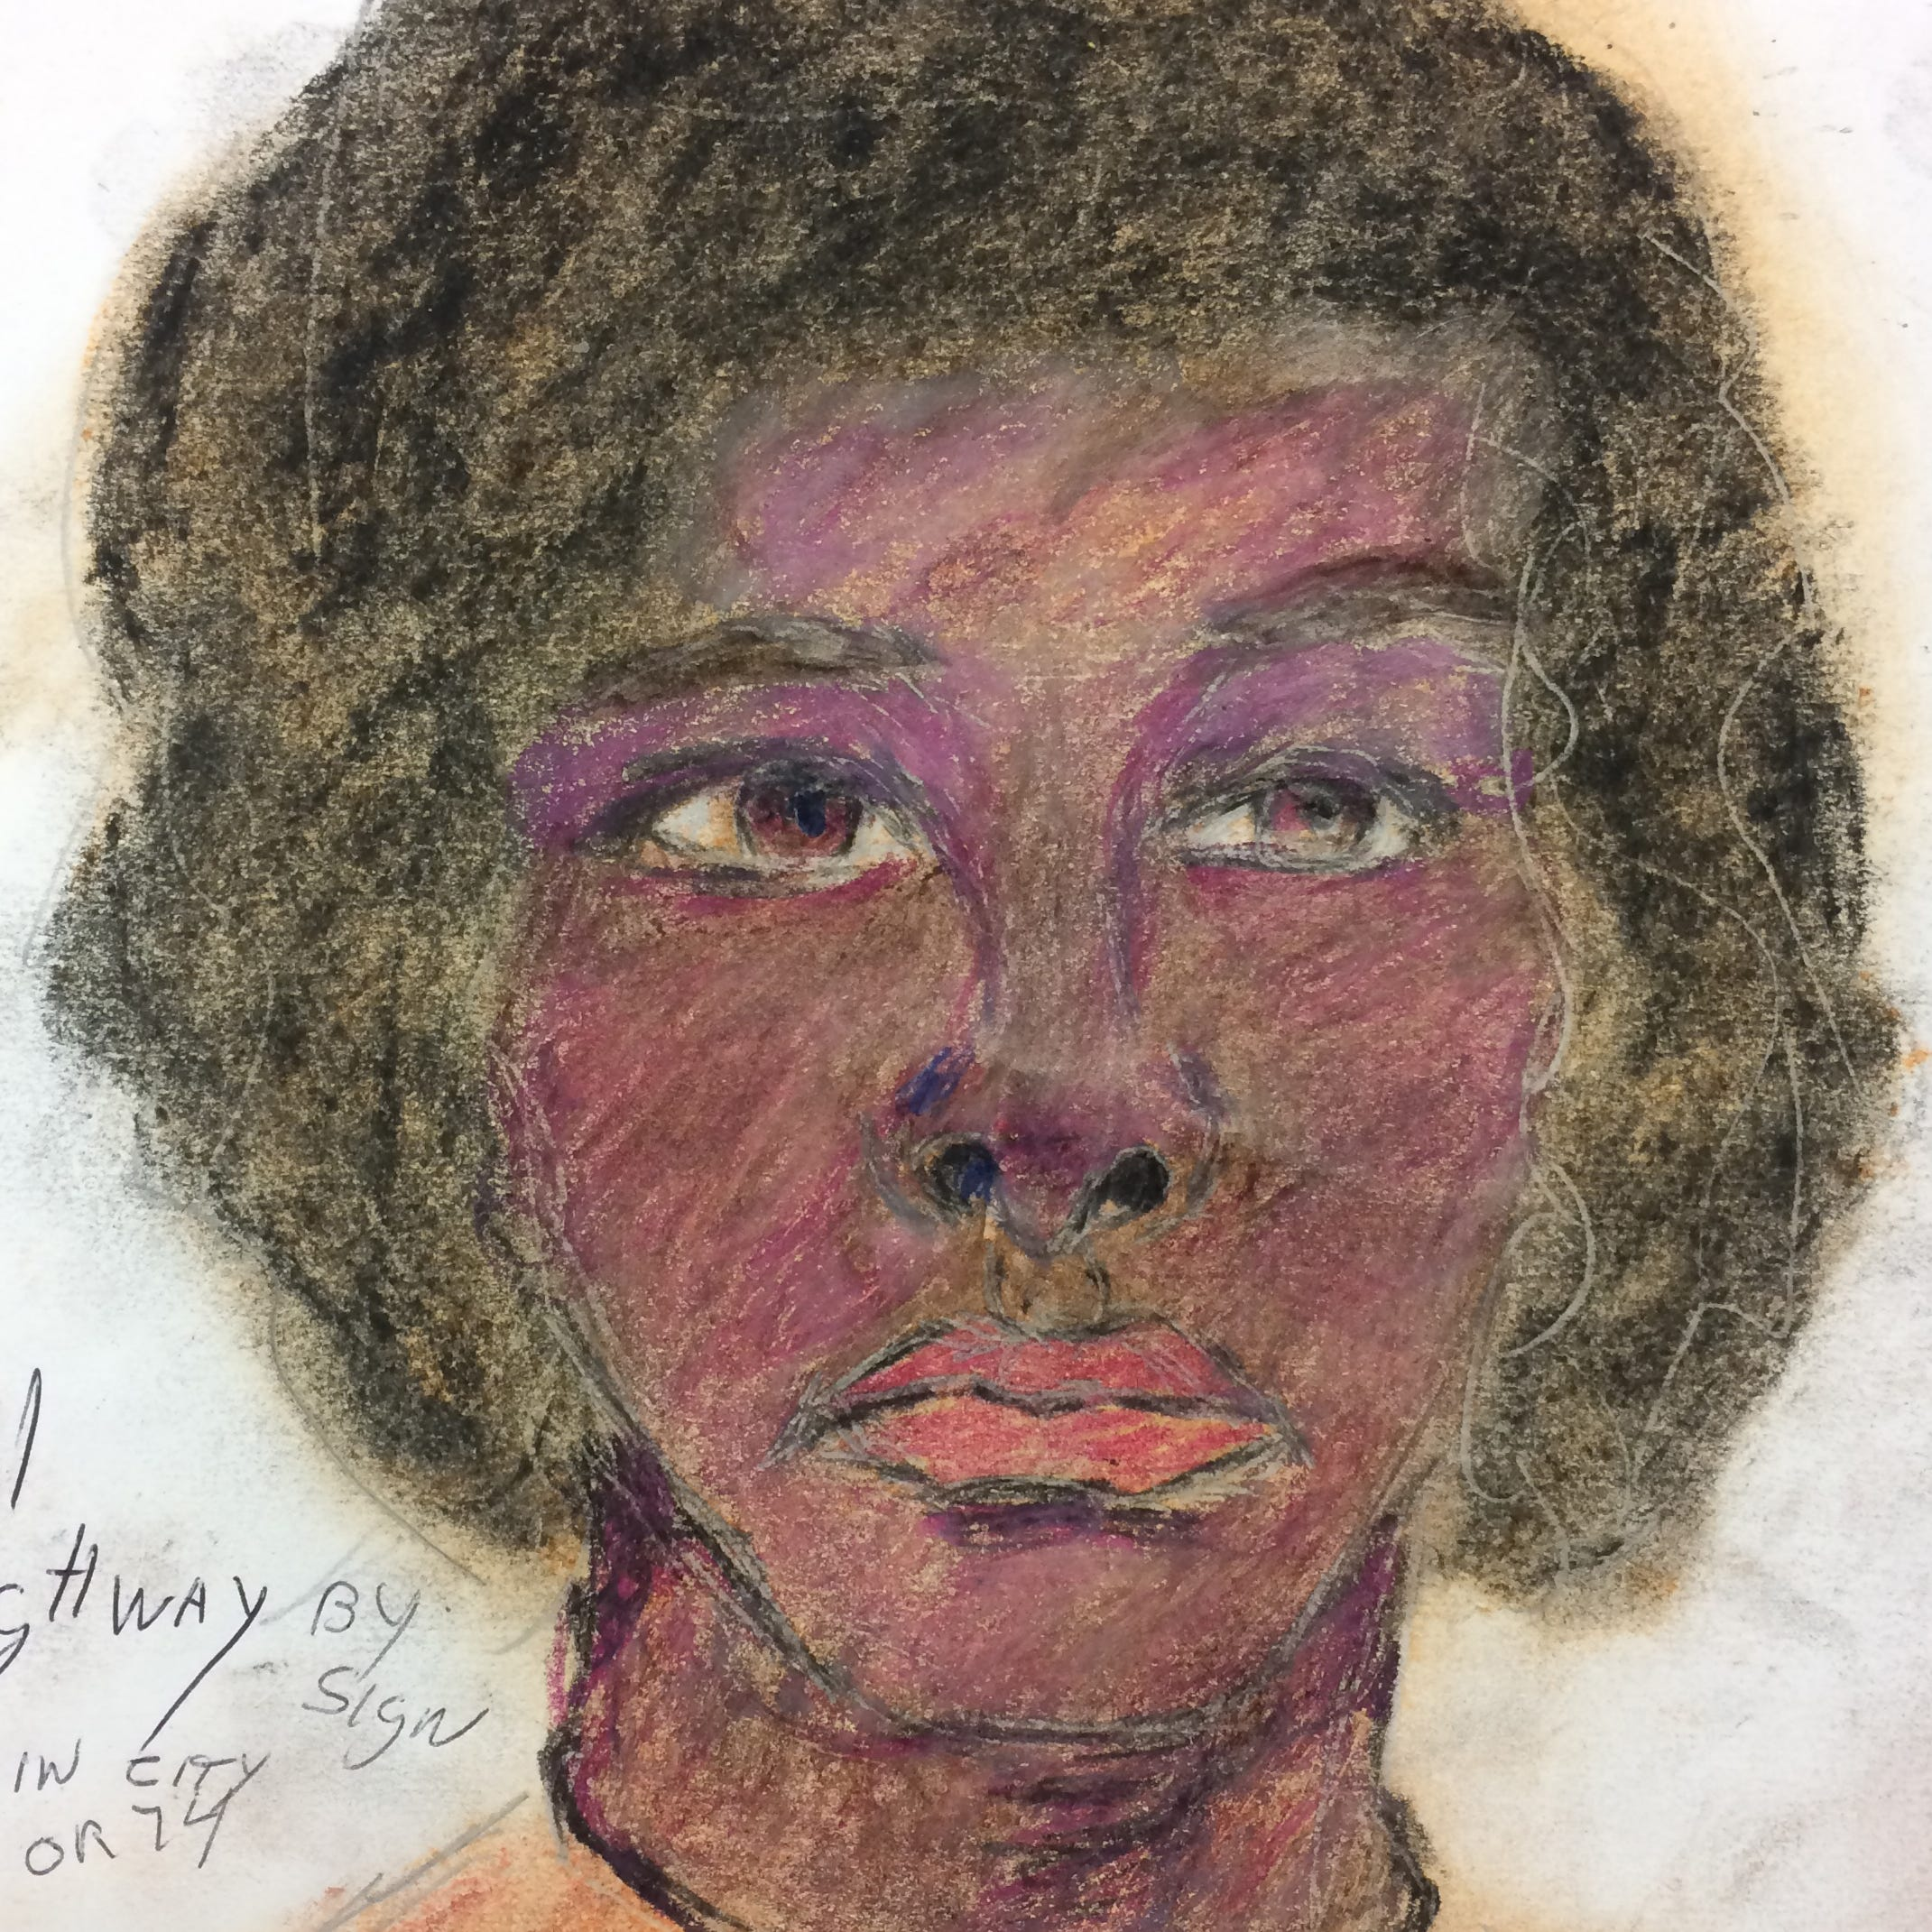 FBI releases sketches of unidentified victims drawn by serial killer Samuel Little